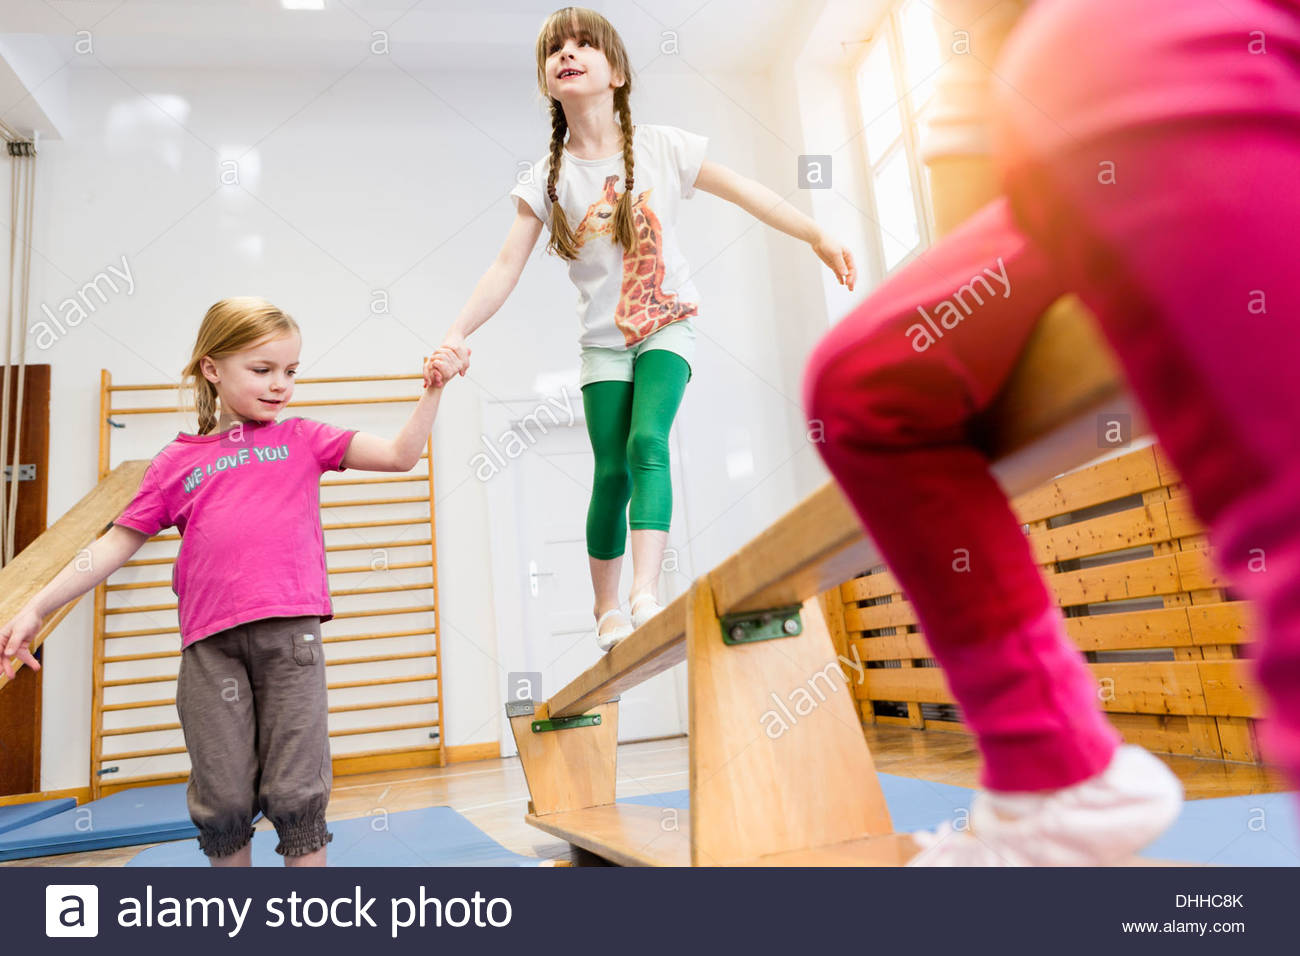 Girl holding hands helping friend across balance beam, friend in foreground - Stock Image